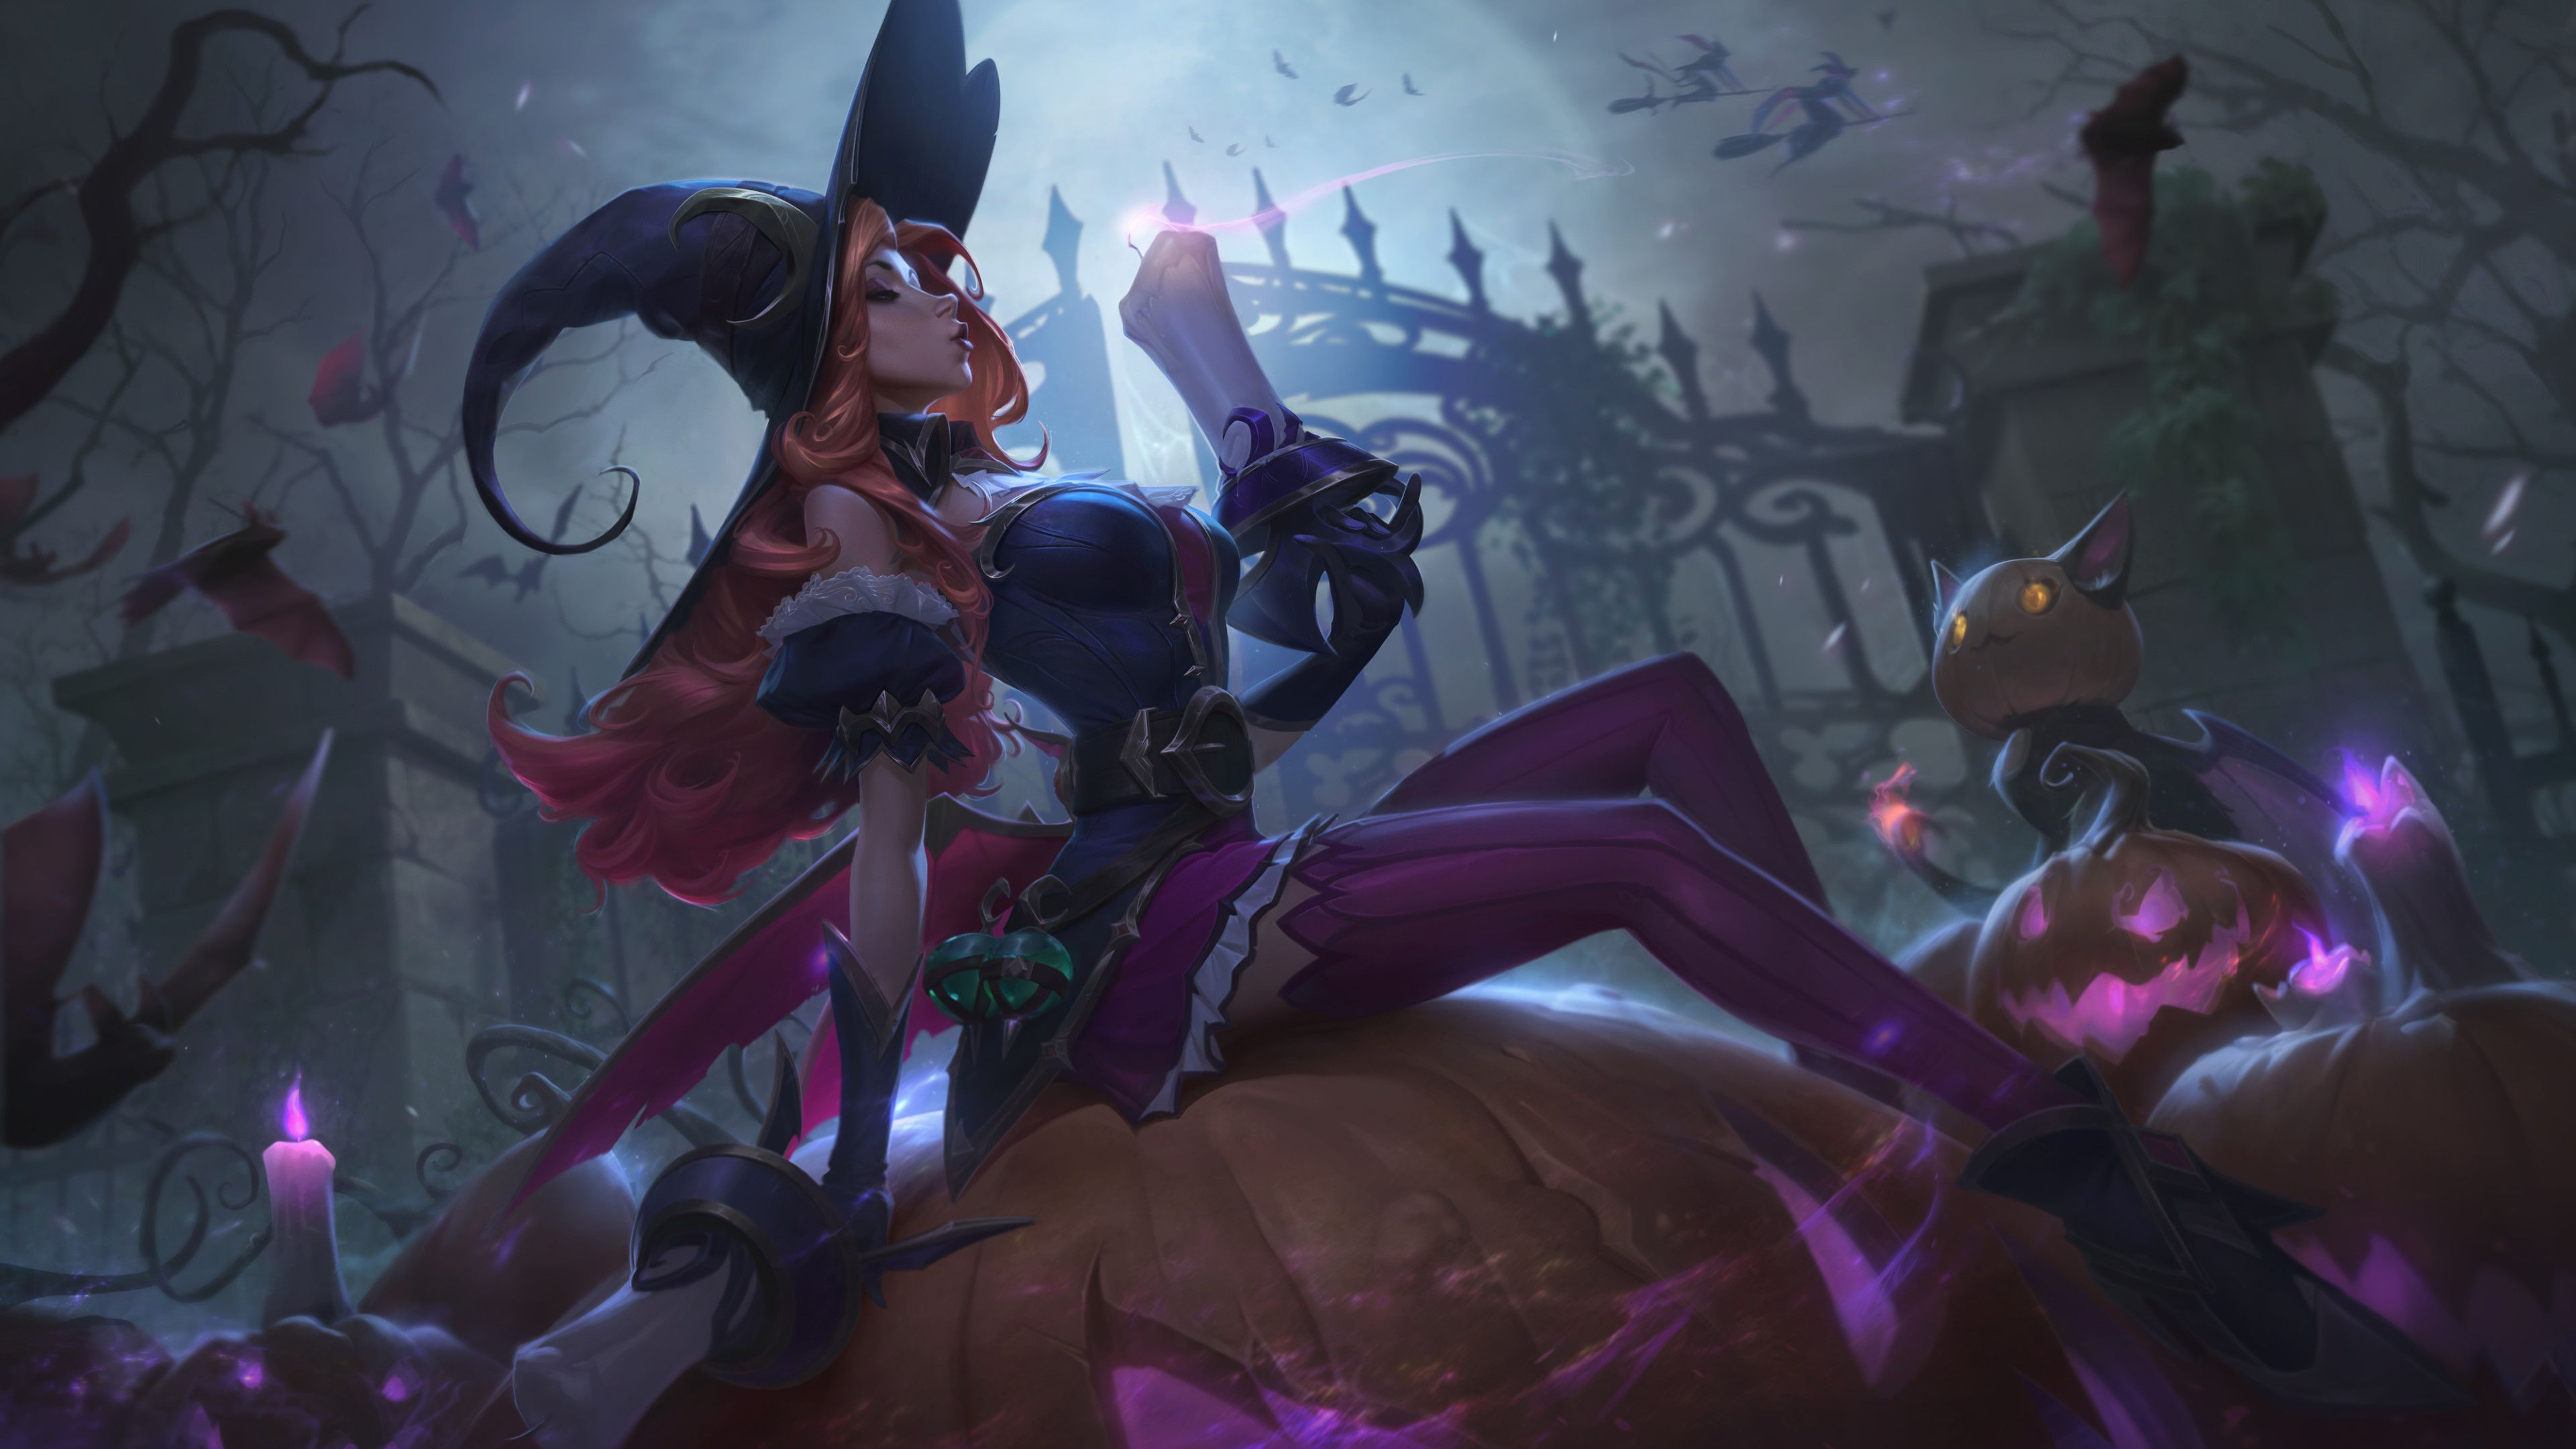 Miss Fortune League Of Legends Miss Fortune Ultra Hd Wallpaper 4k Miss Fortune Lol Wallpaper 4k M Miss Fortune League Of Legends Characters League Of Legends